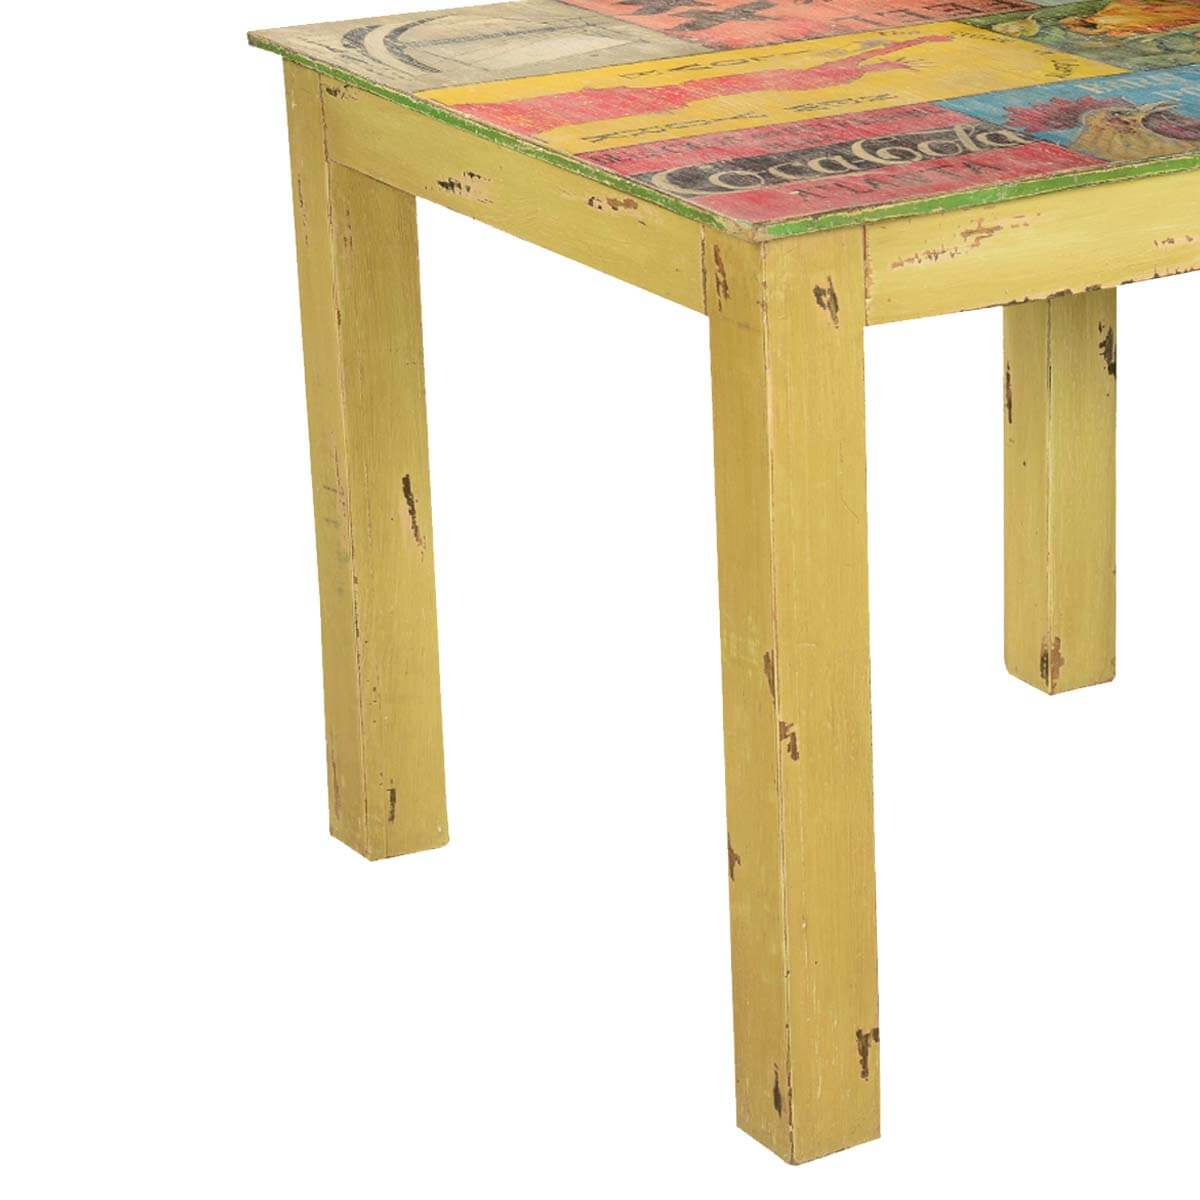 Pop Art Labels Mango Wood Yellow 35quot Square Dining Table : 69384 from www.sierralivingconcepts.com size 1200 x 1200 jpeg 96kB